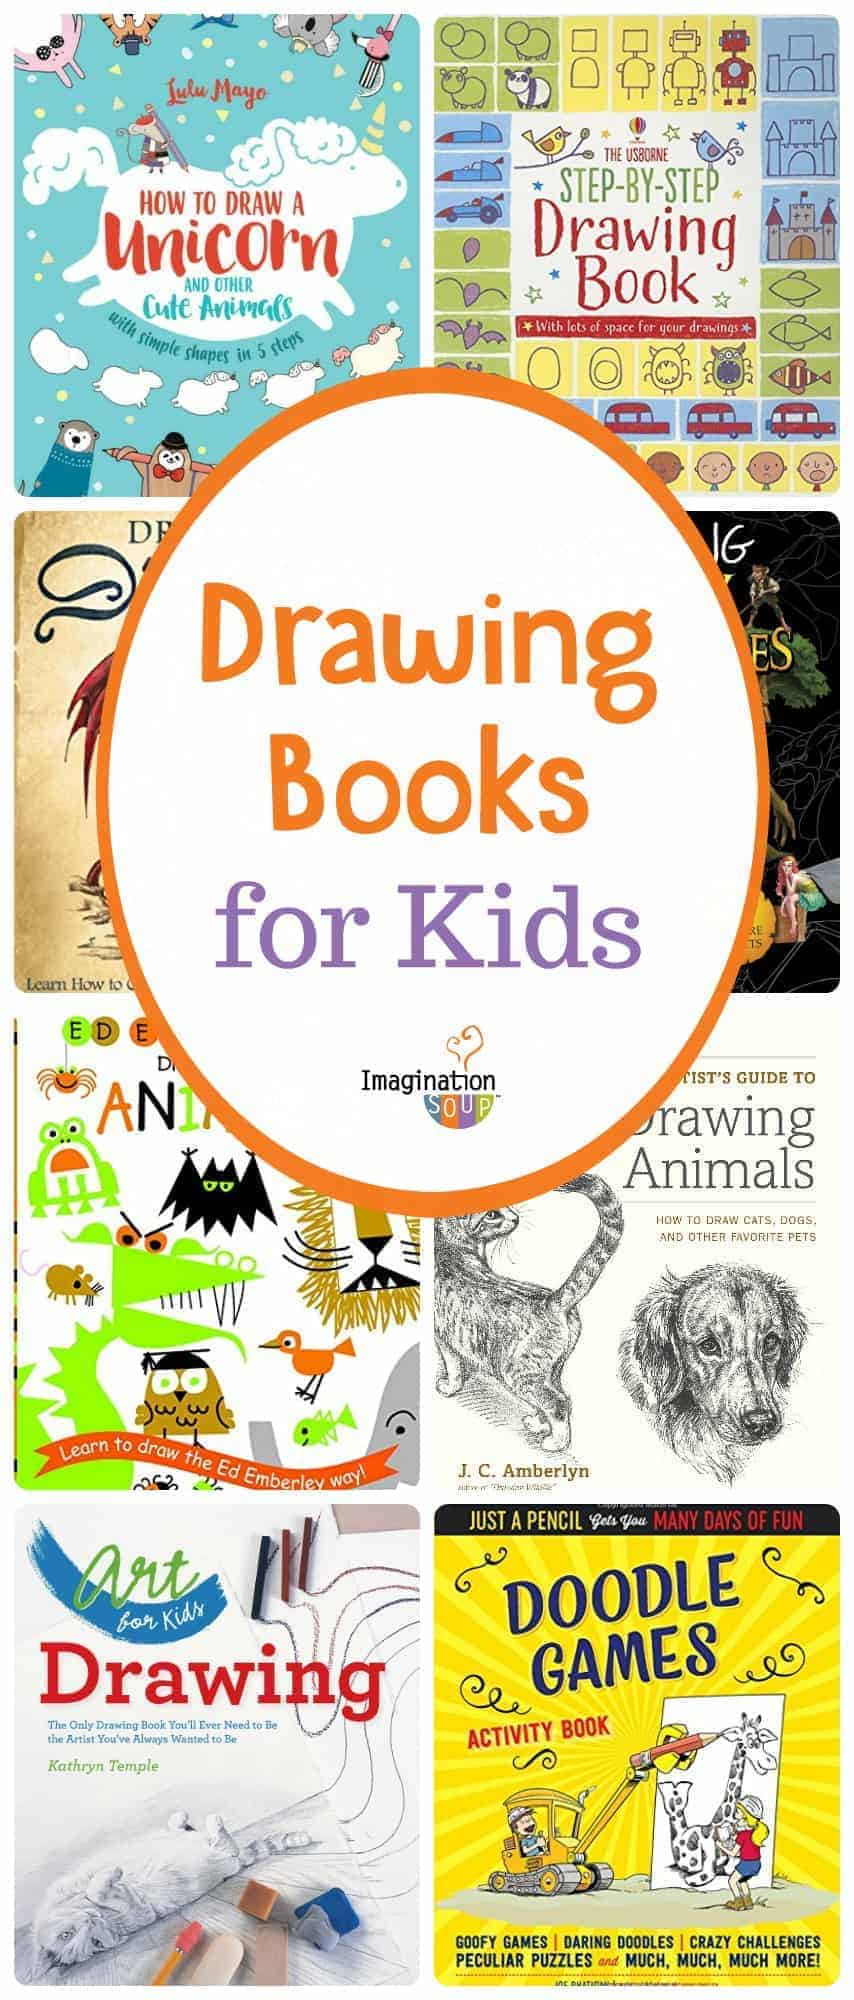 Best Drawing Books and Supplies for Kids